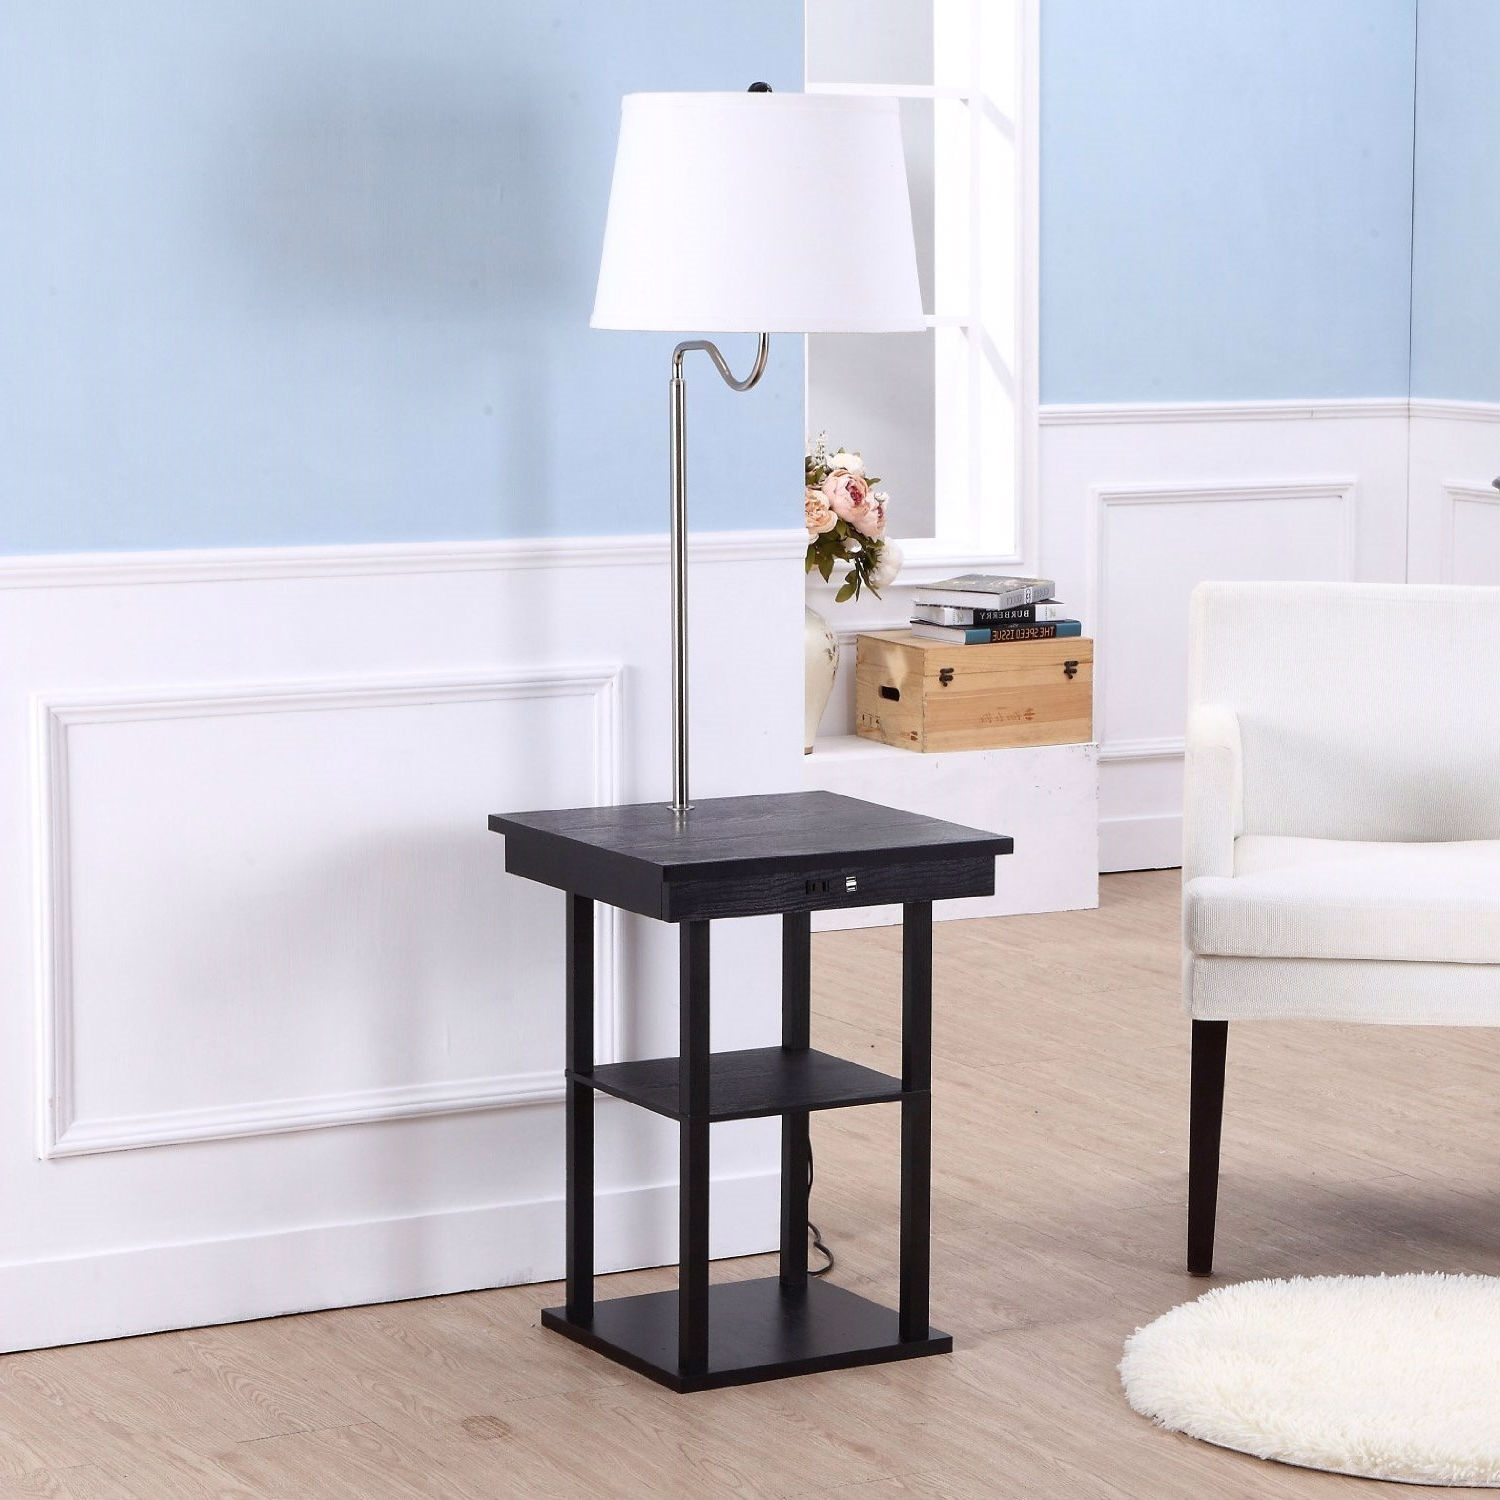 On Style Today 2020 11 20 Contemporary Open Floor Plans With Table Lamp Here